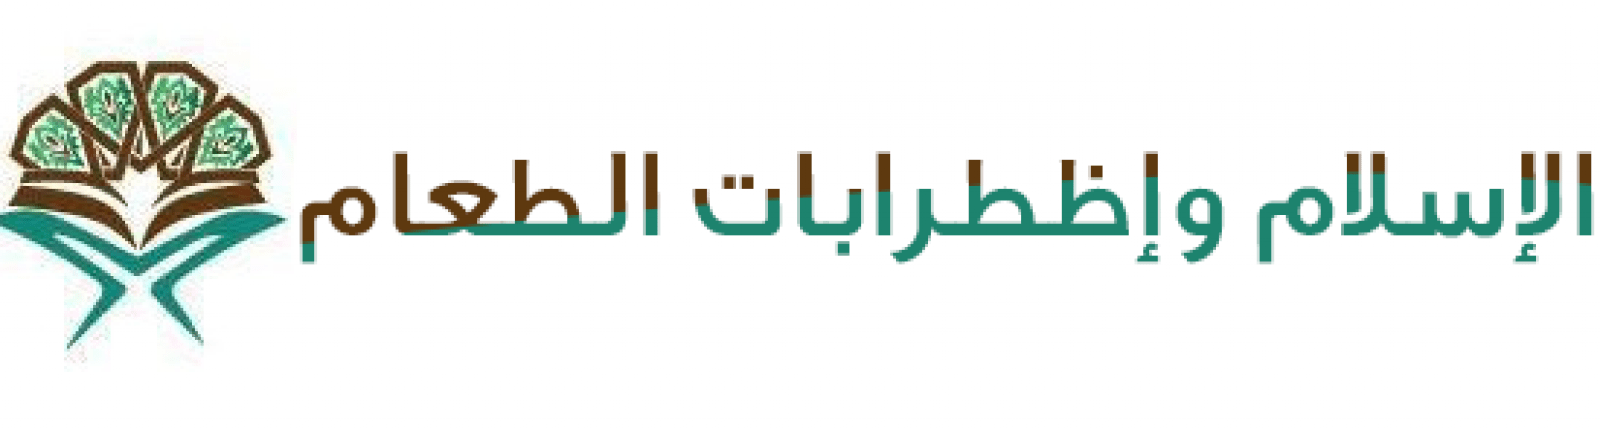 cropped-Arabic-Logo-1.png